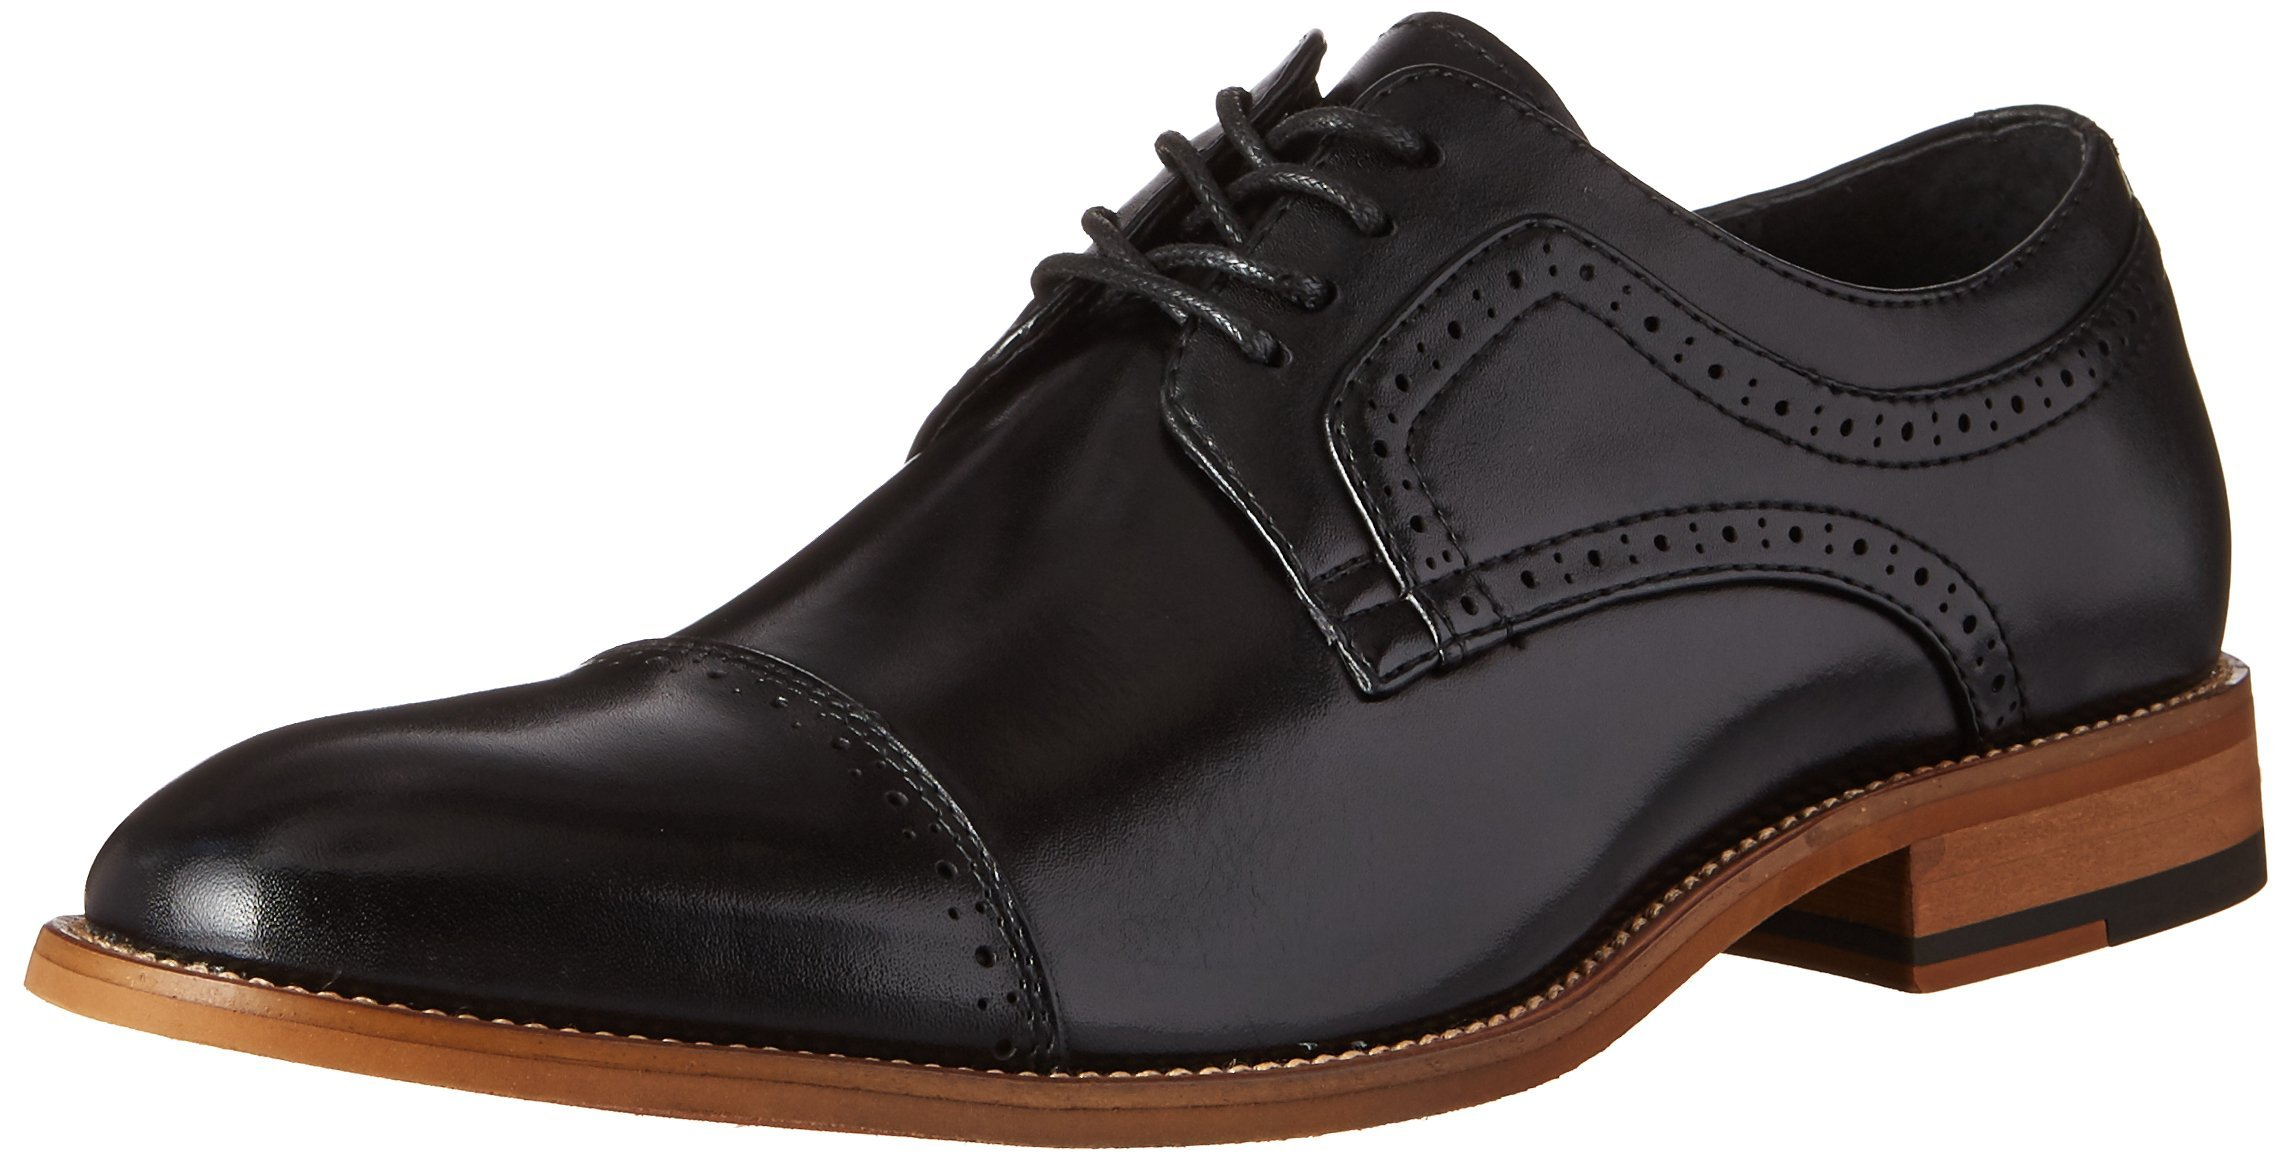 Stacy Adams Men's Dickinson Cap Toe Oxford, Black, 10 W US by Stacy Adams